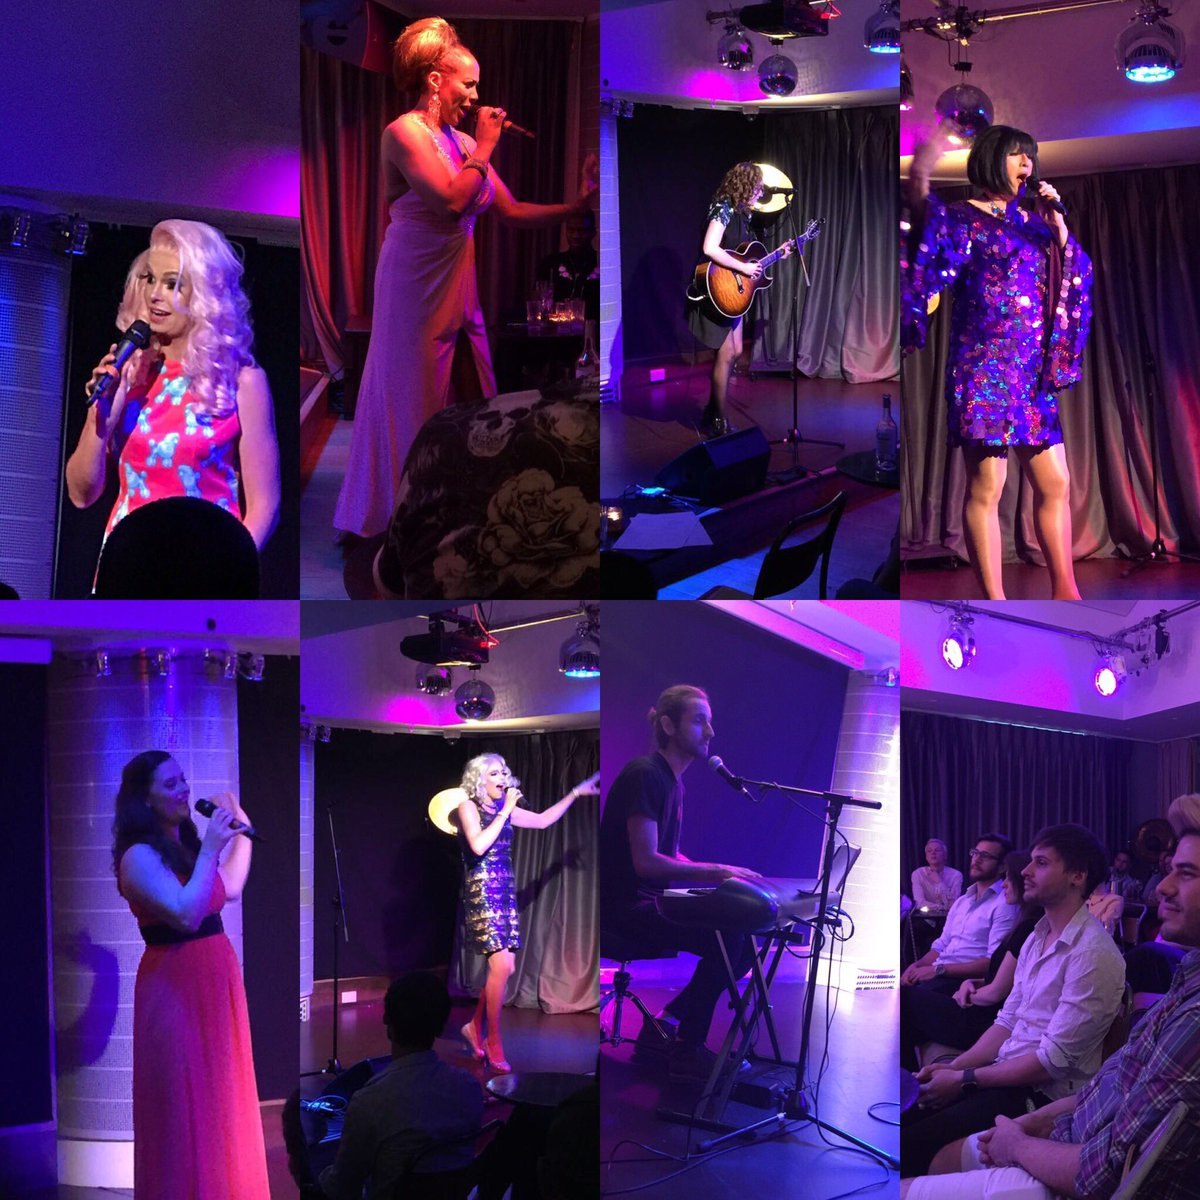 A wonderful night of @LondonLGBTPride #PridesGotTalent at @TheHospitalClub - promoting emerging talent #music <br>http://pic.twitter.com/IDeQXFhaM0